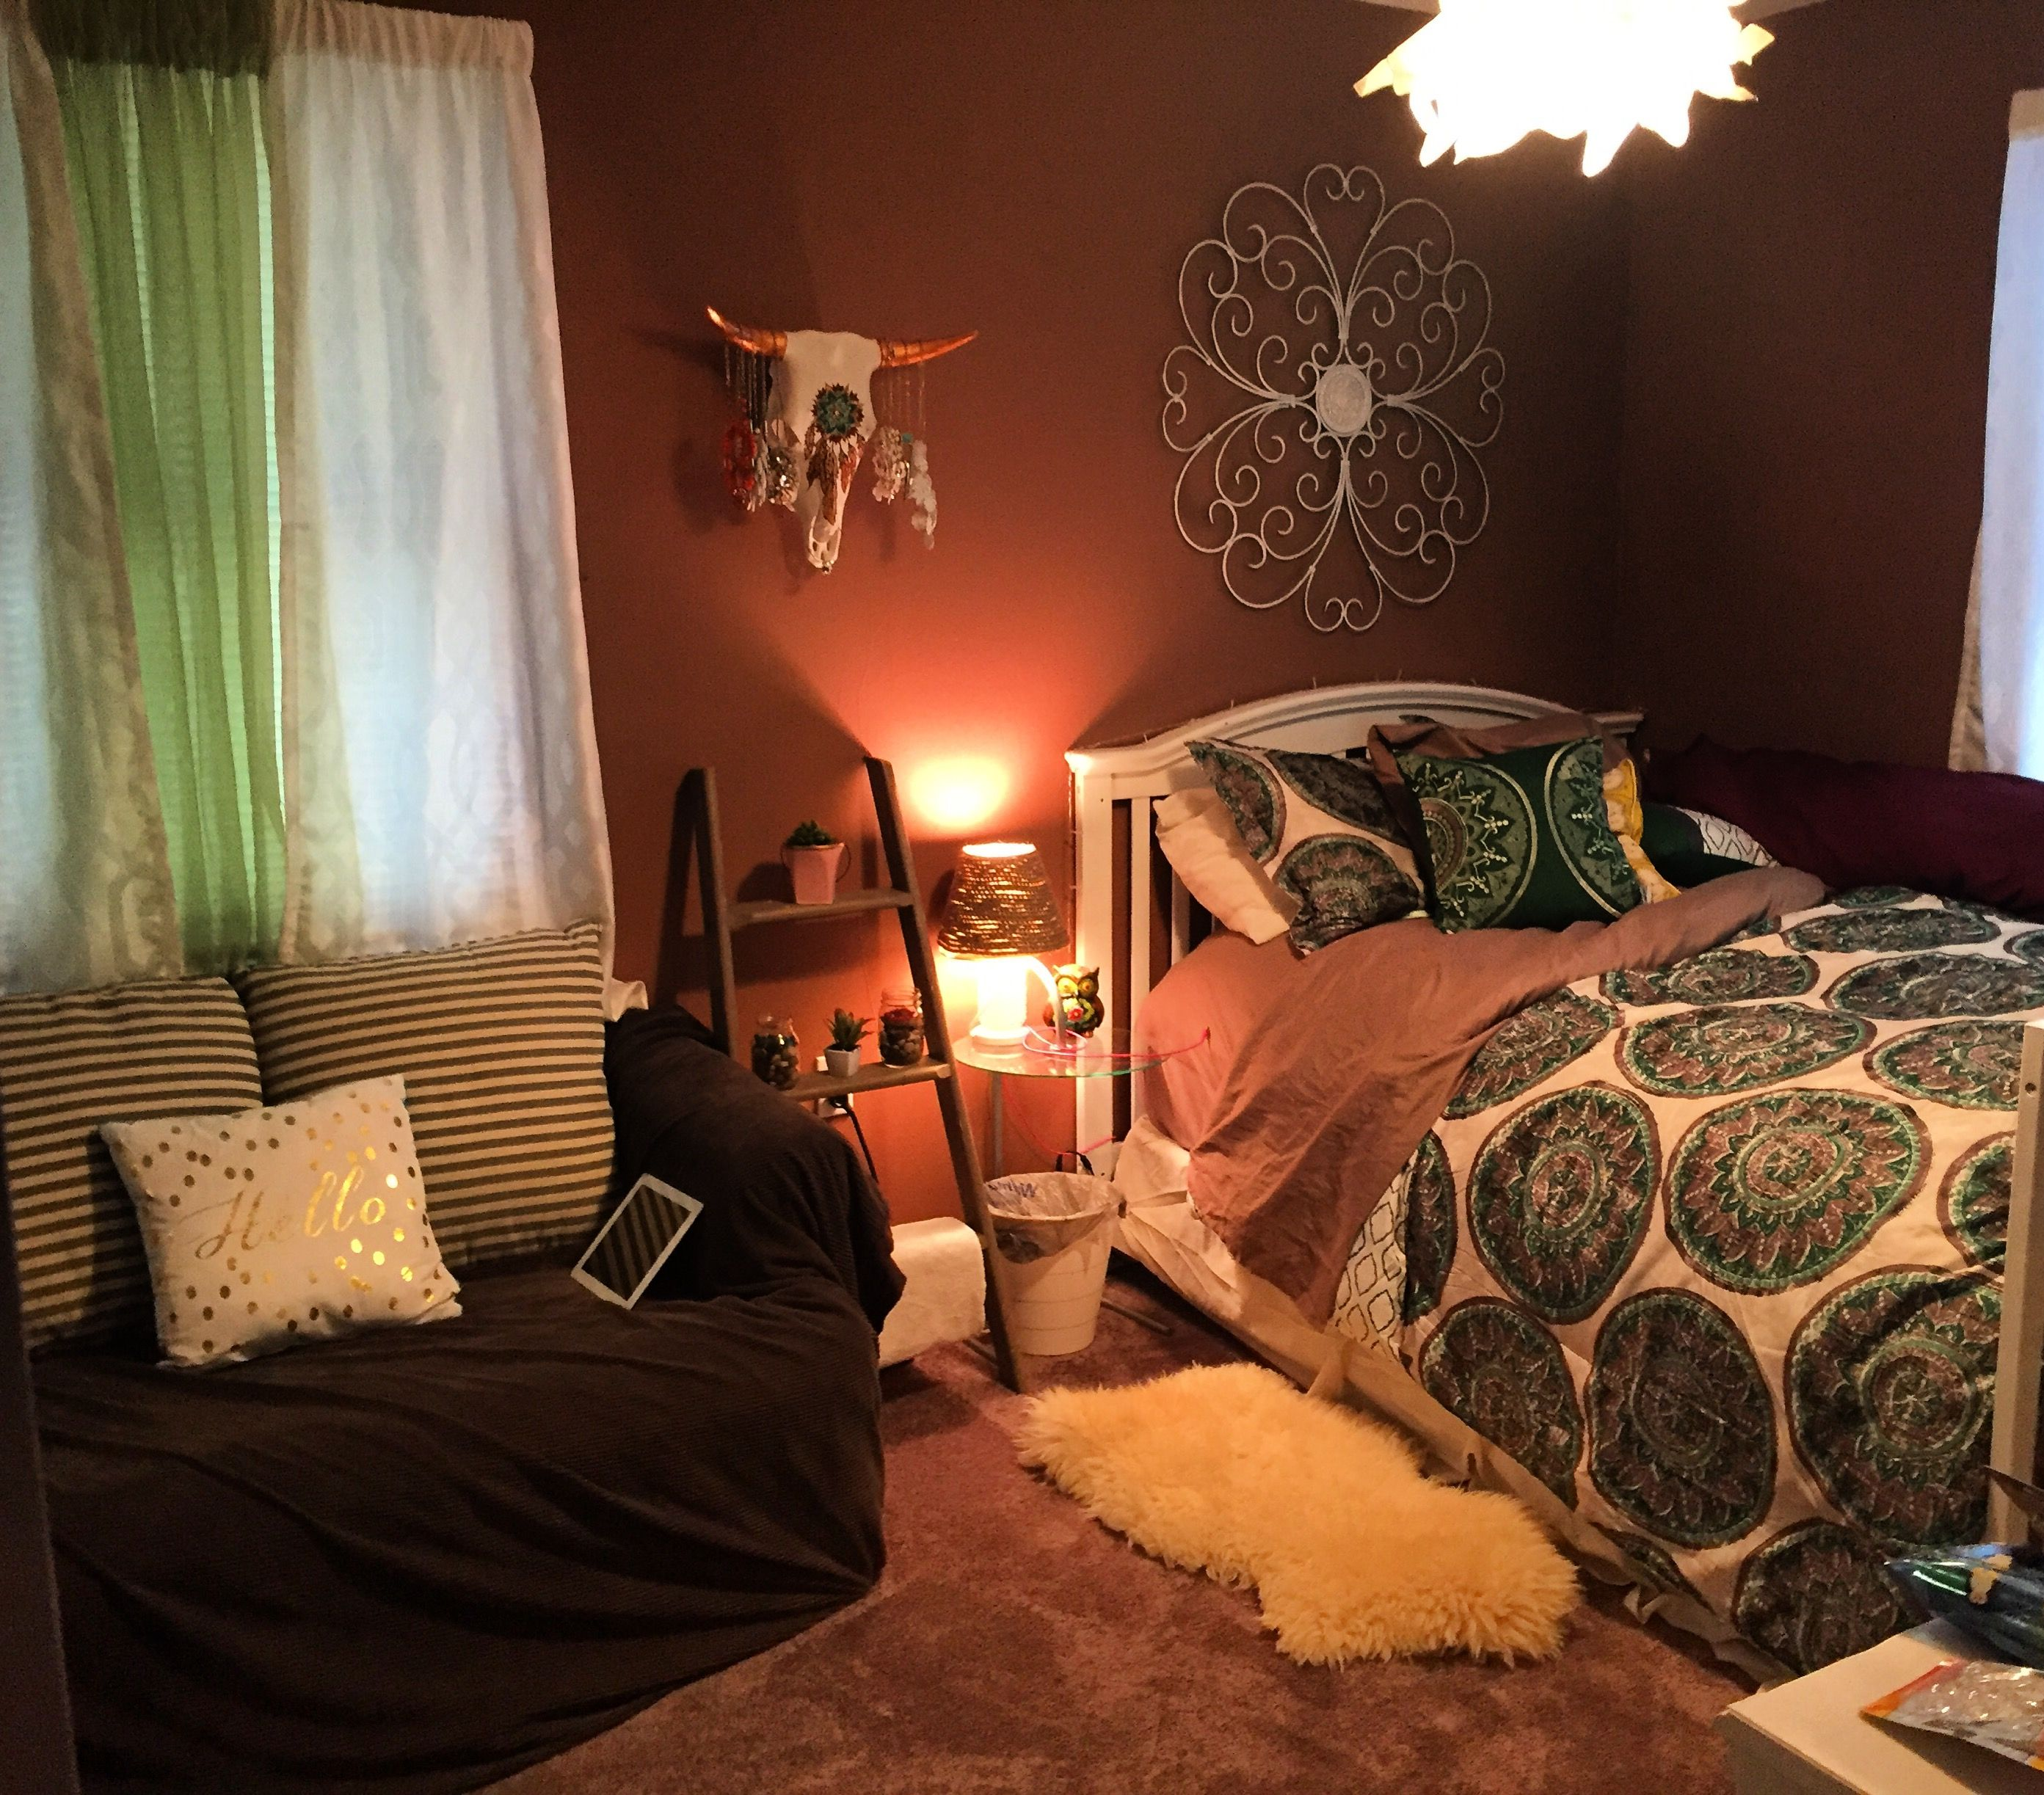 #bedroomdesign bedroom design, DIY bedroom decor, bedroom on a budget, upcycle bedroom